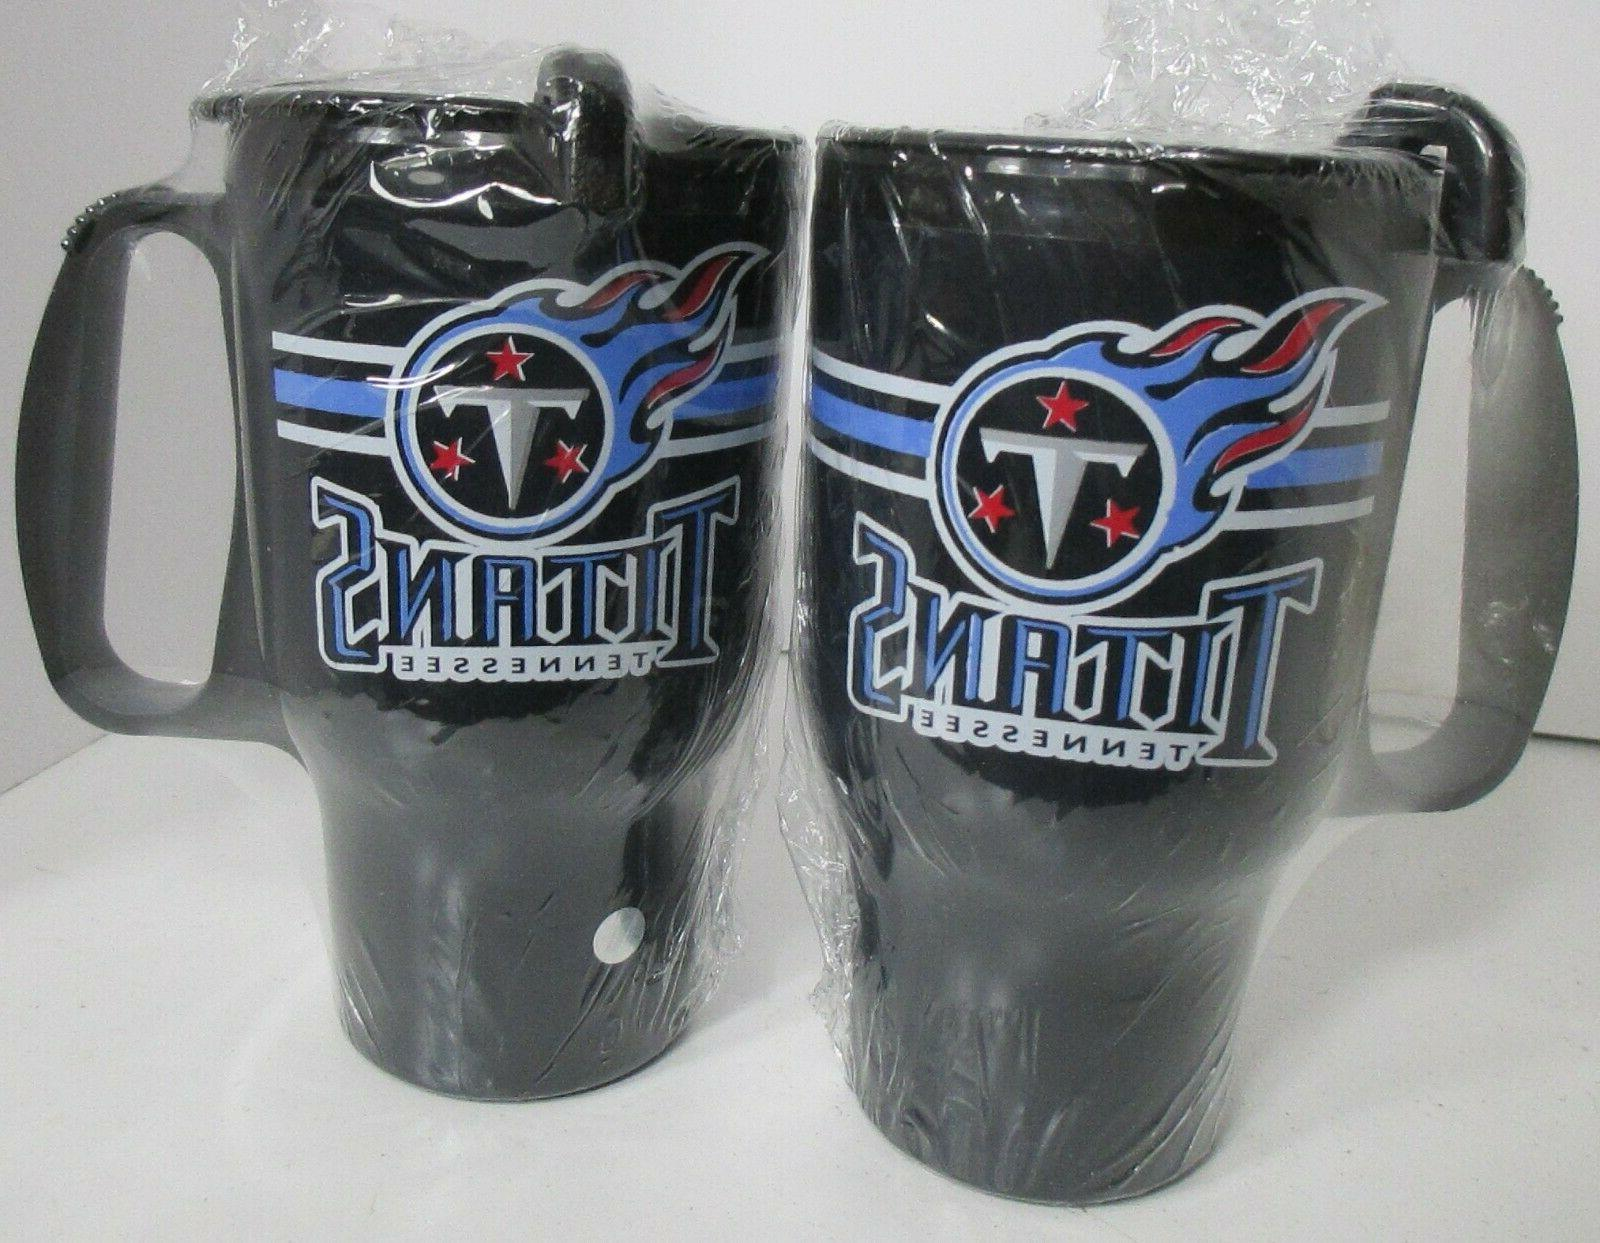 titans tennessee car mug cup 2 units